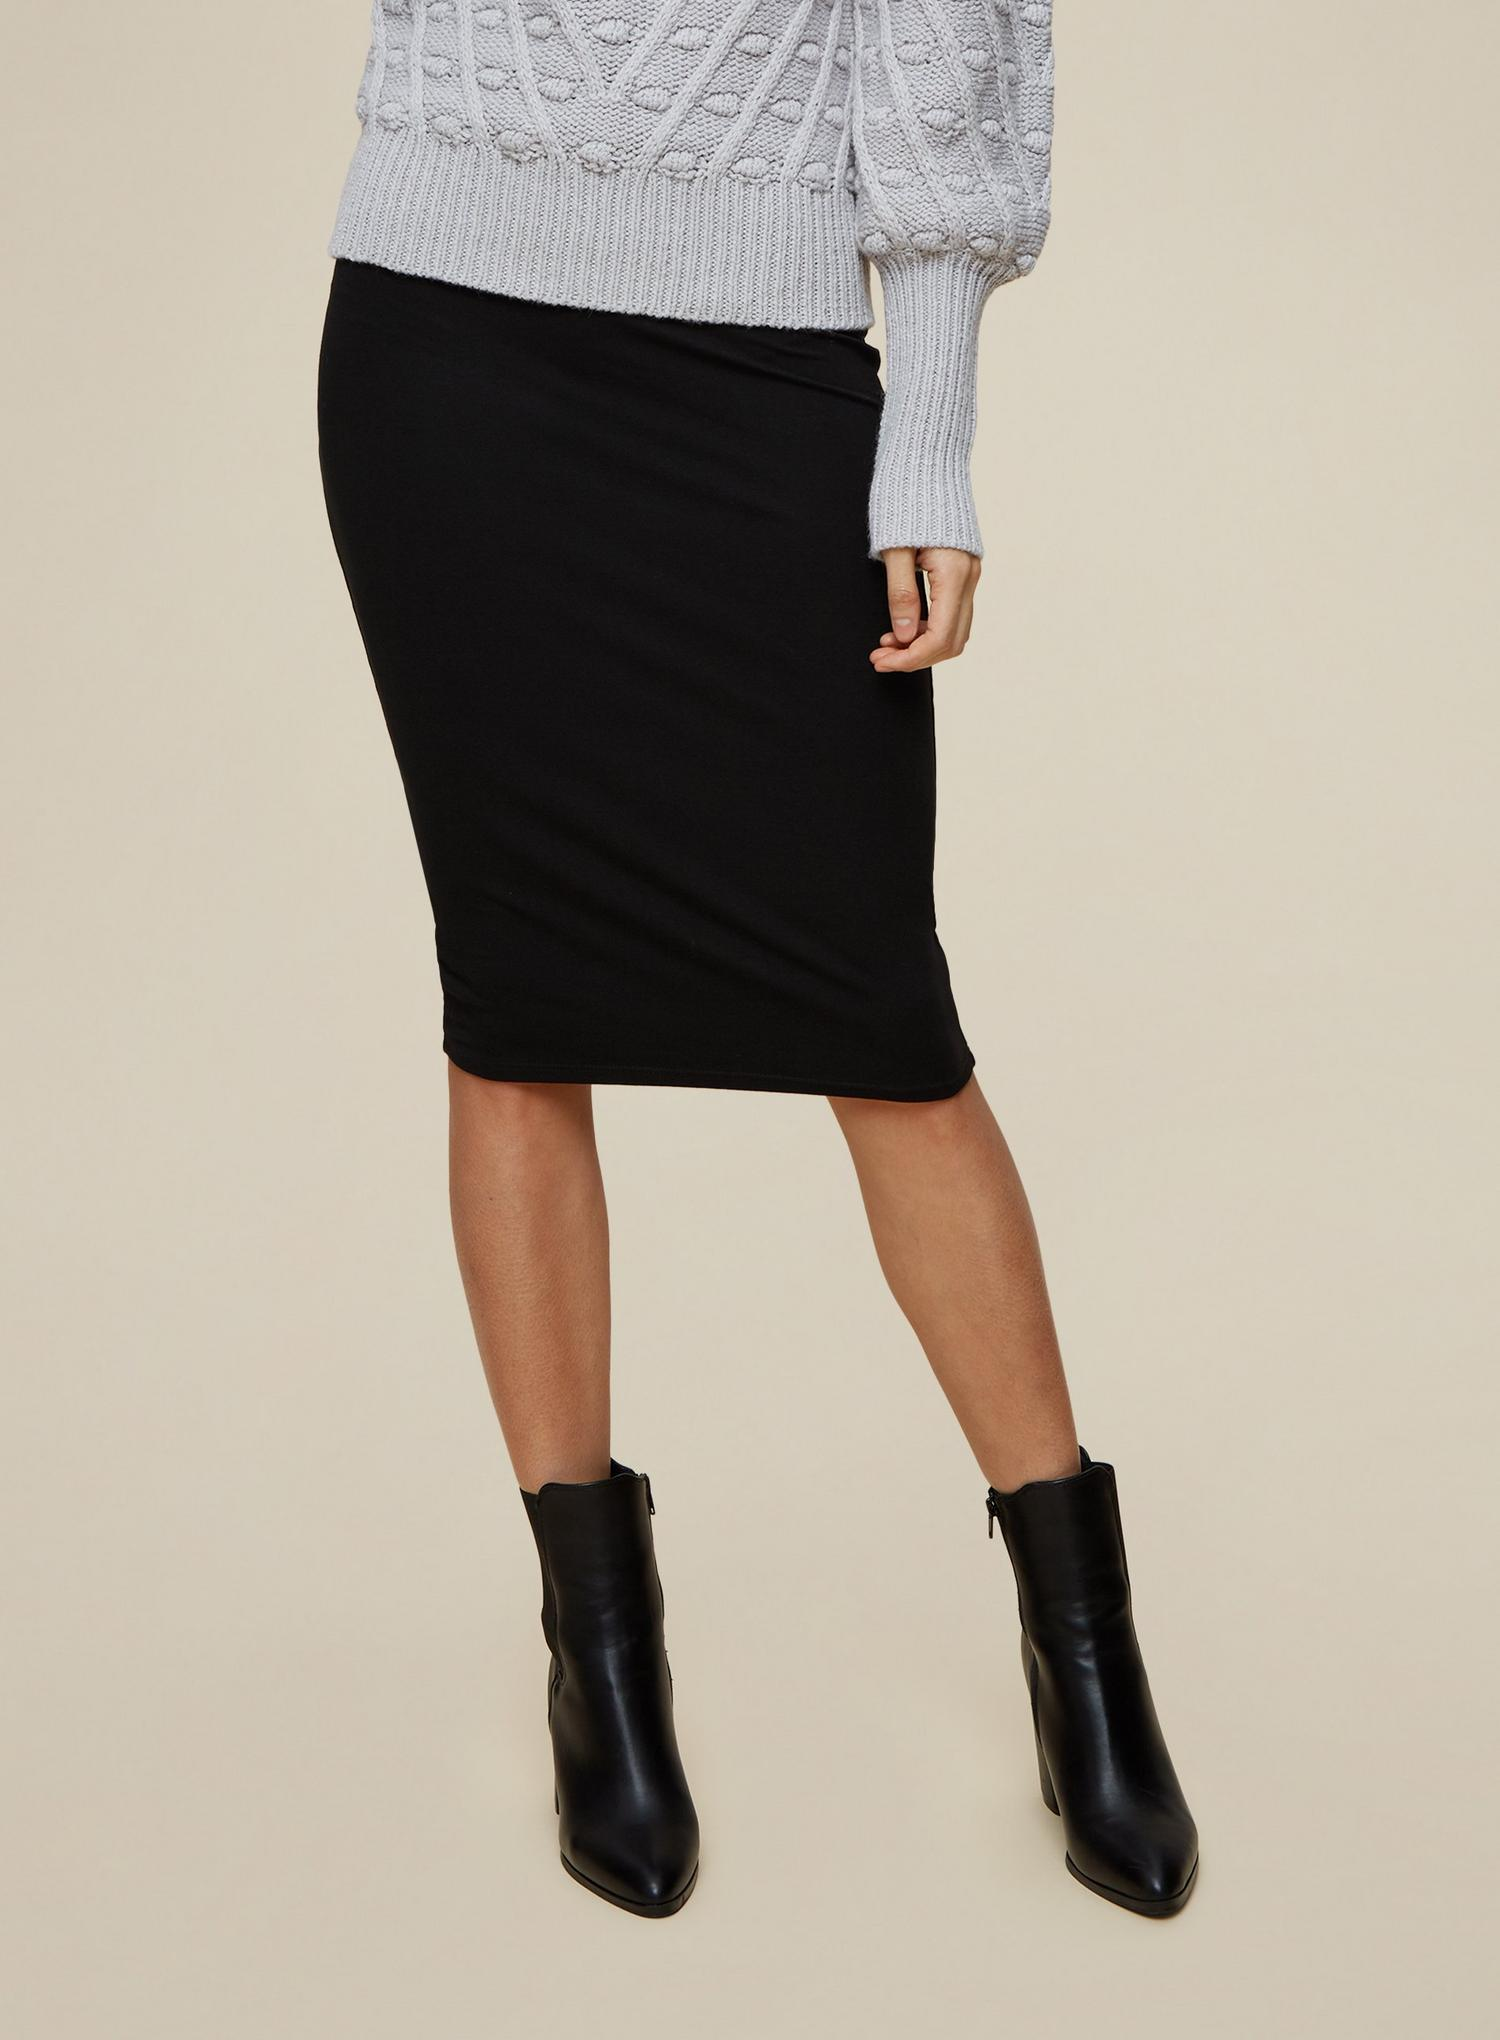 105 Tall Black Midi Skirt image number 1